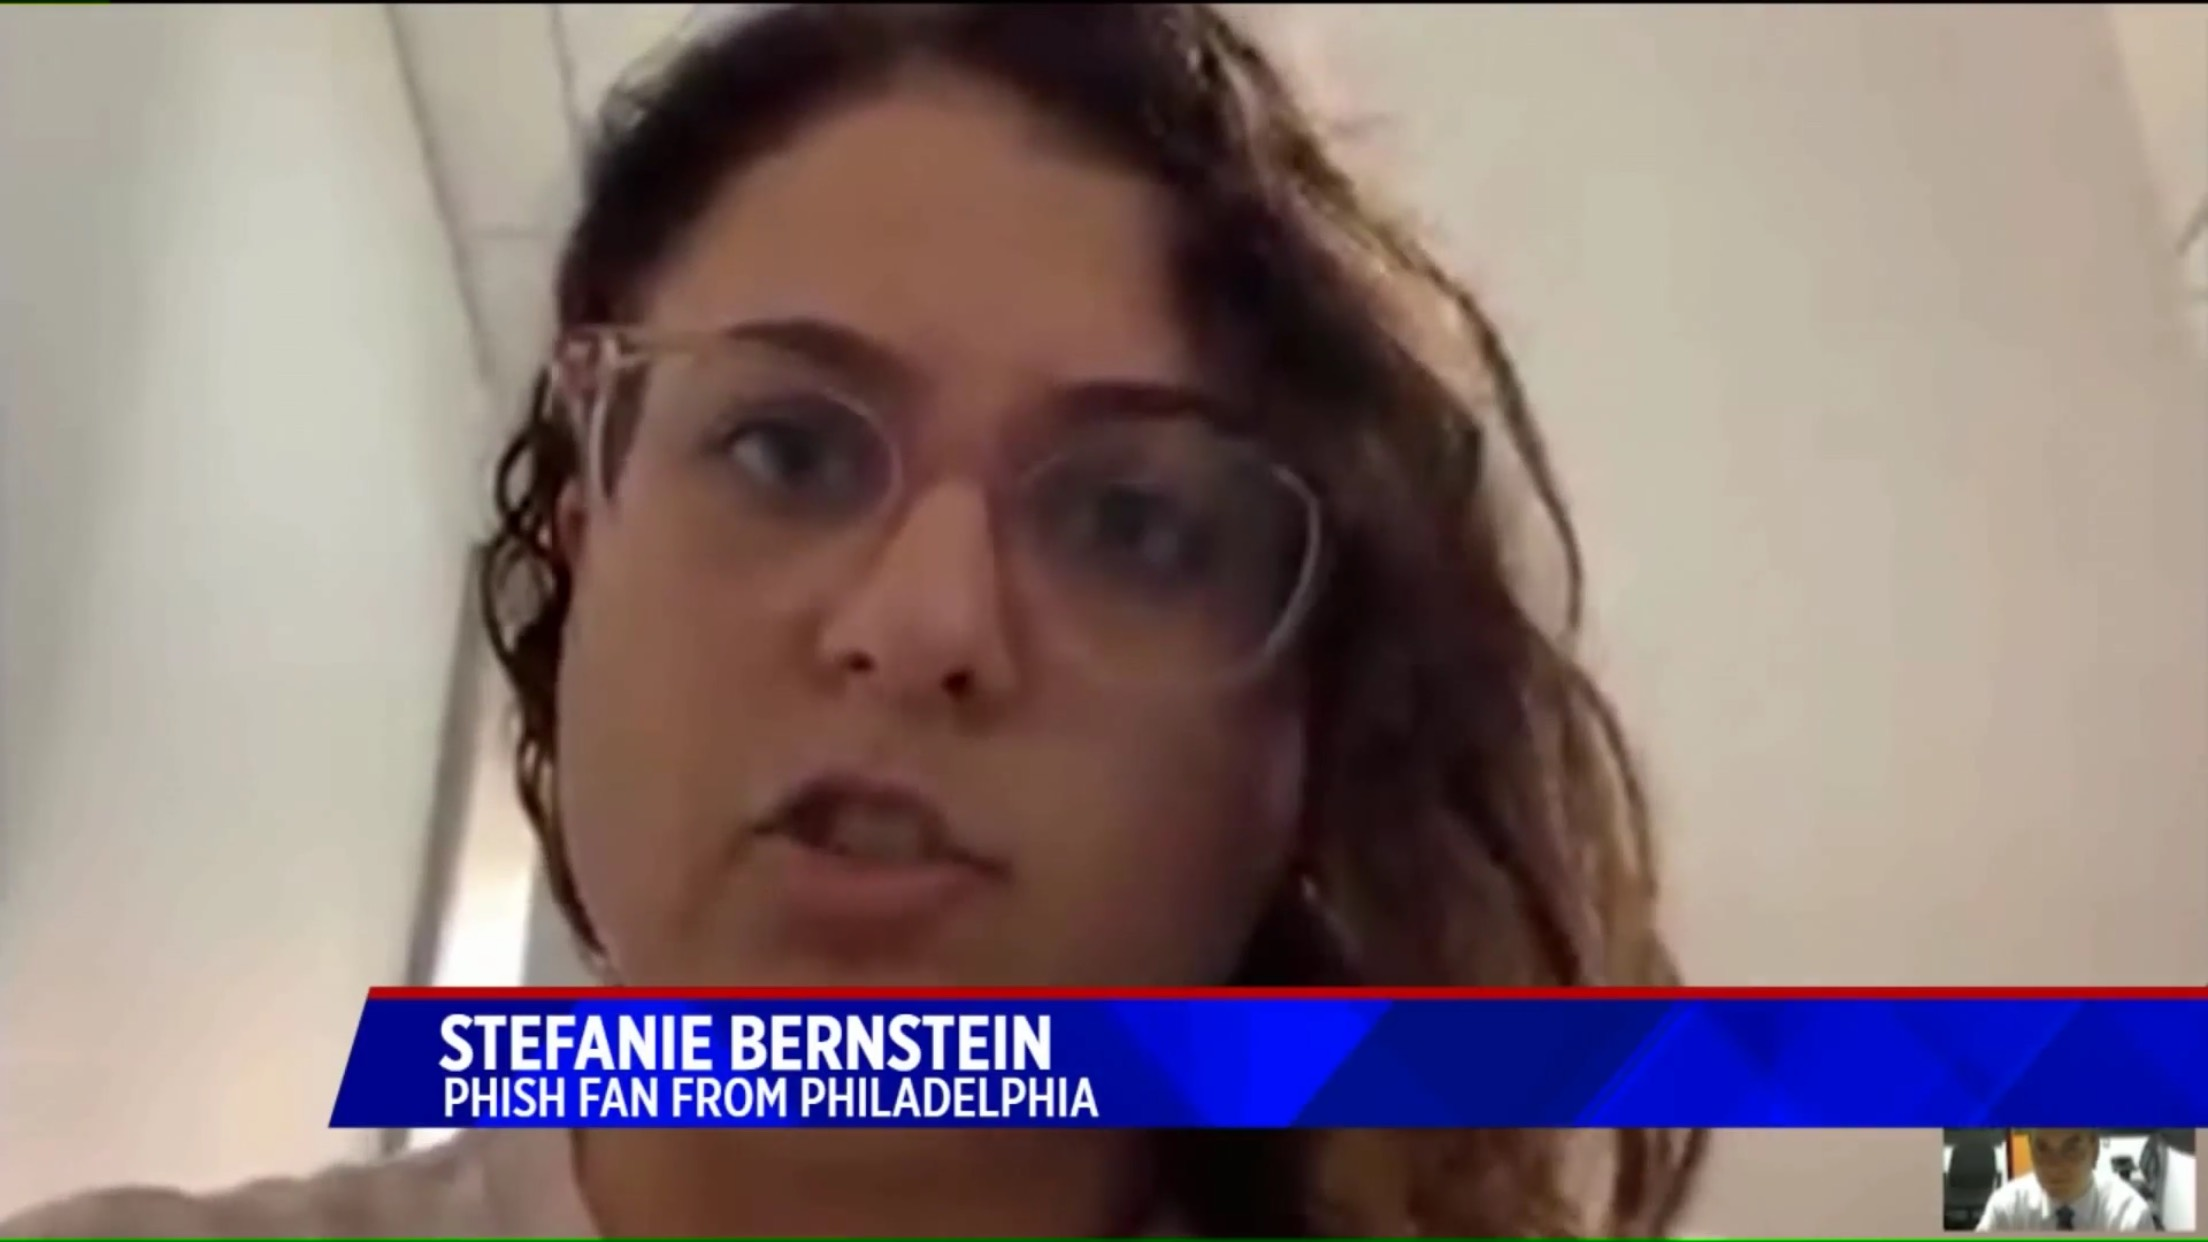 Stefanie Bernstein: Phish Fan From Philadelphia